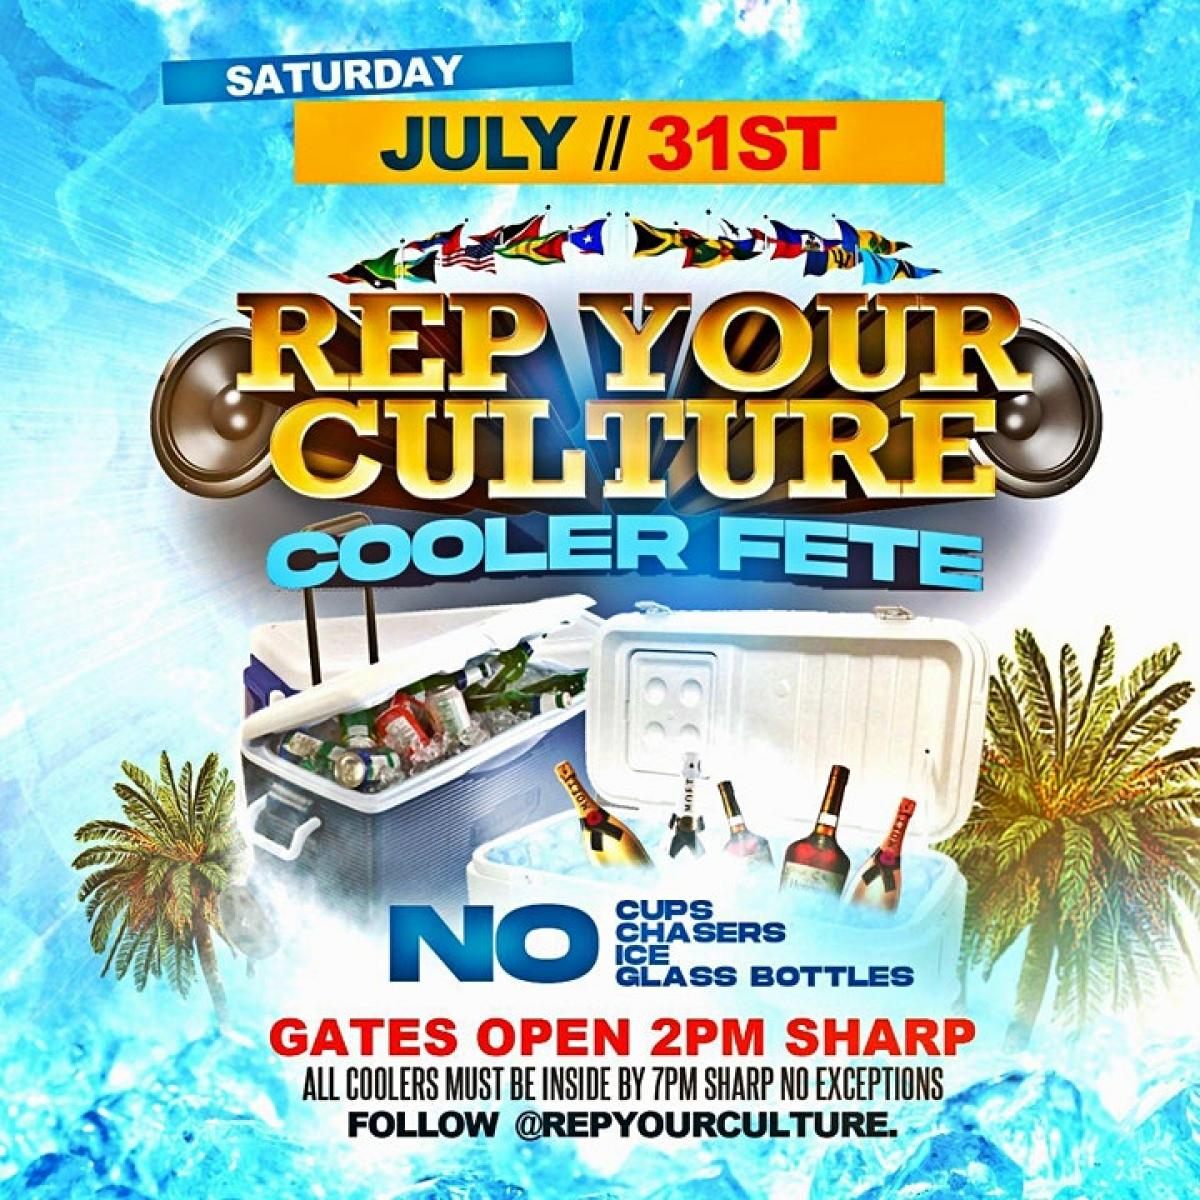 Rep Your Culture Cooler Fete flyer or graphic.